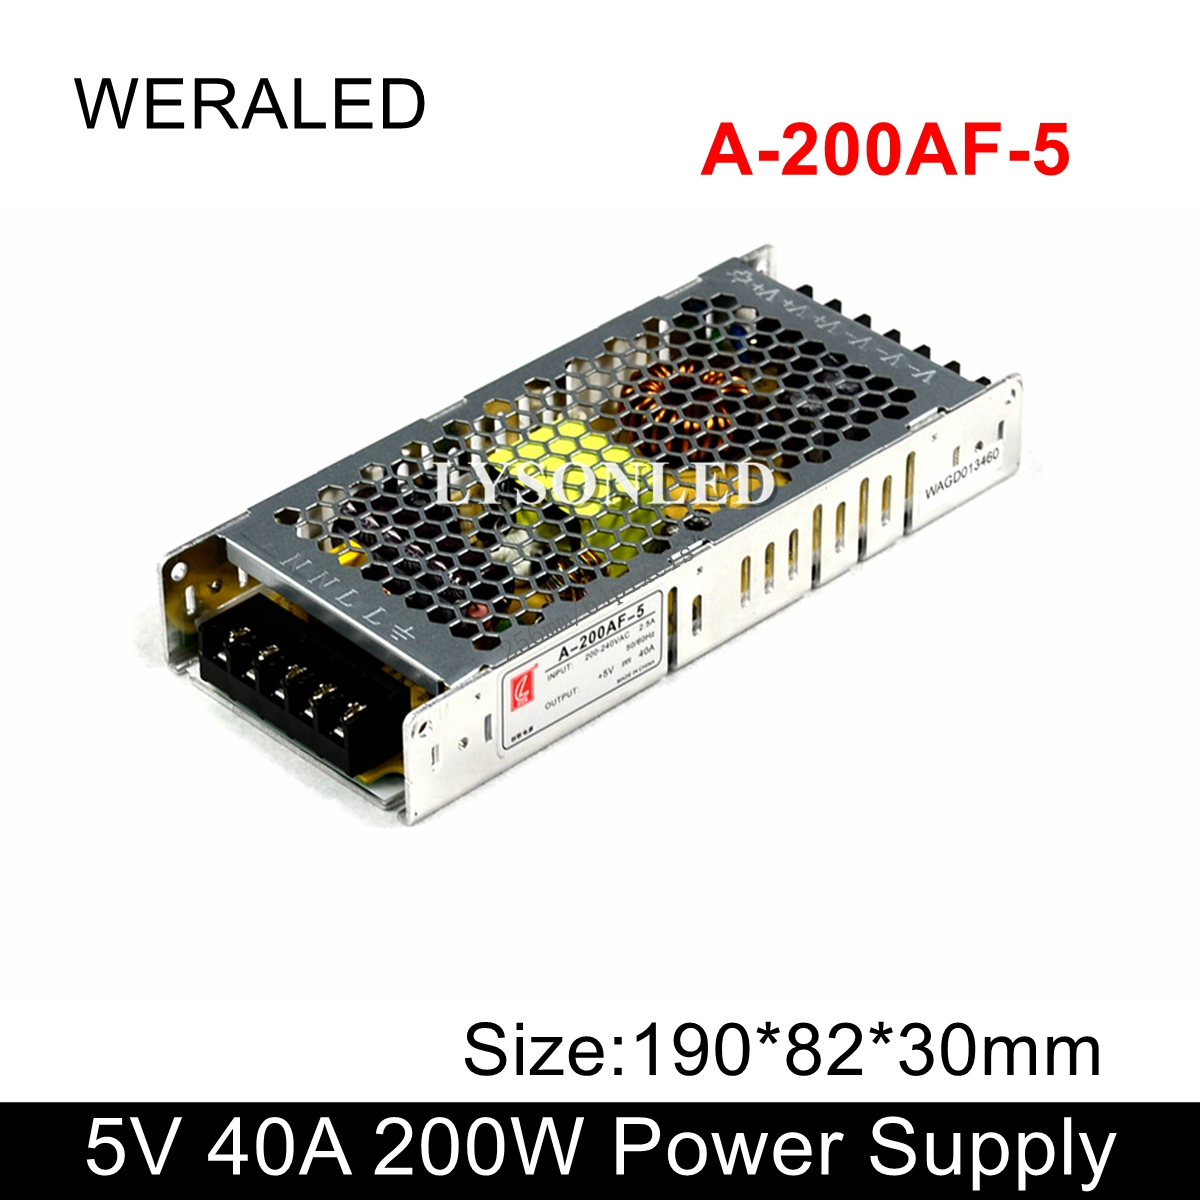 A-200AF-5 Chuanglian 5V 40A 200W Power Supply 110V 230V Input PSU For LED Display